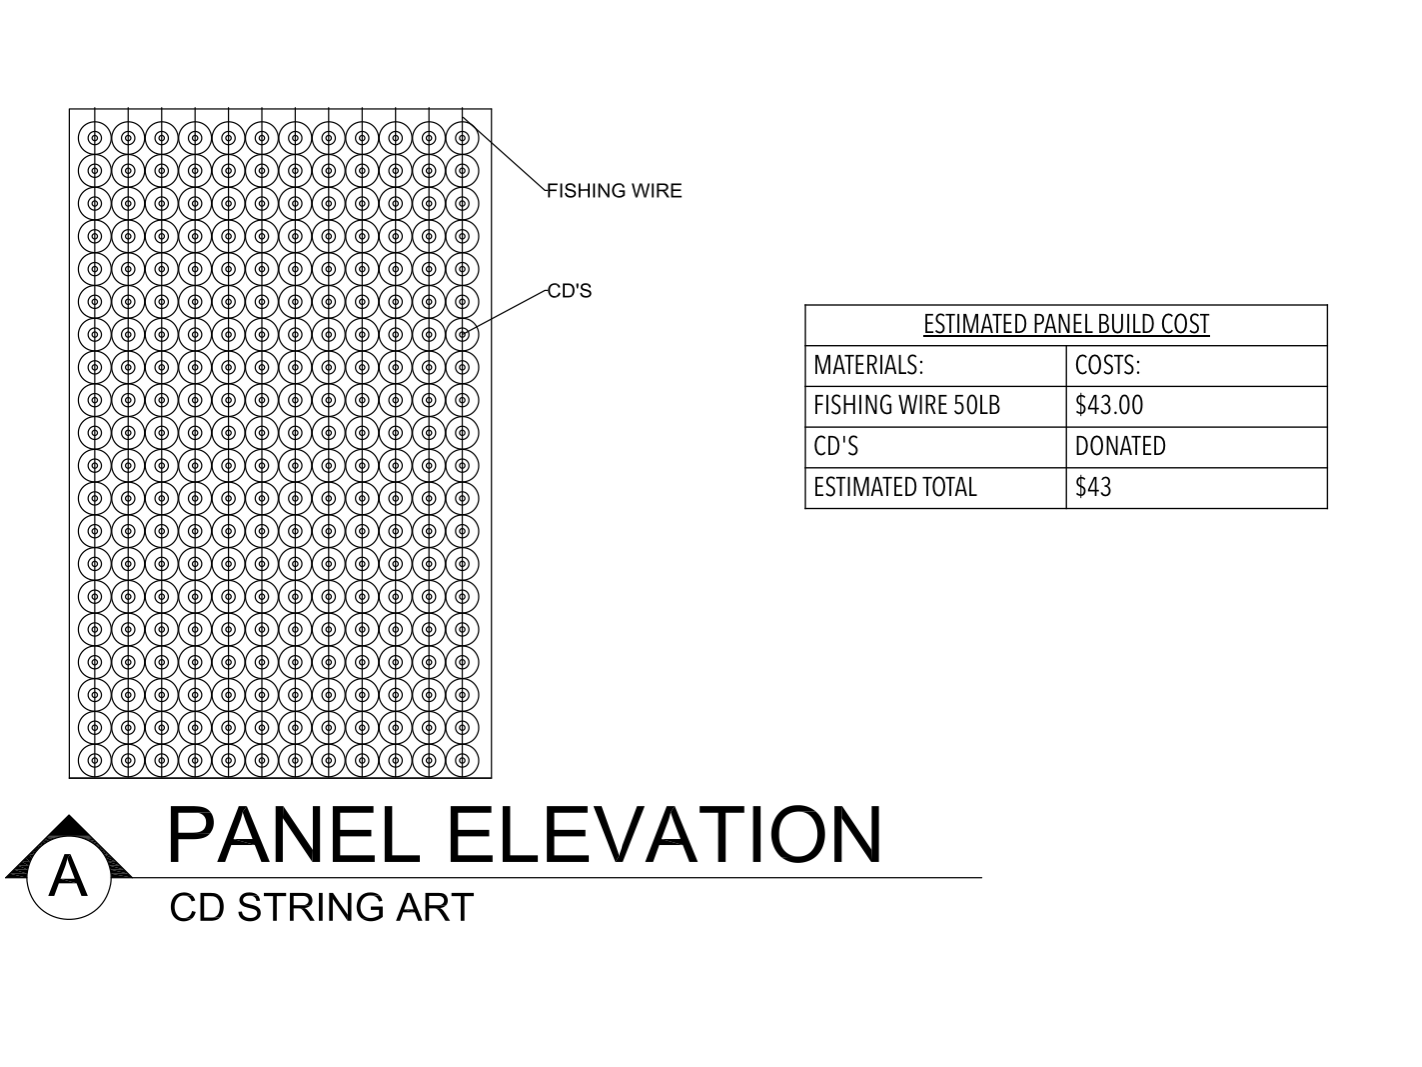 Panel Elevation A